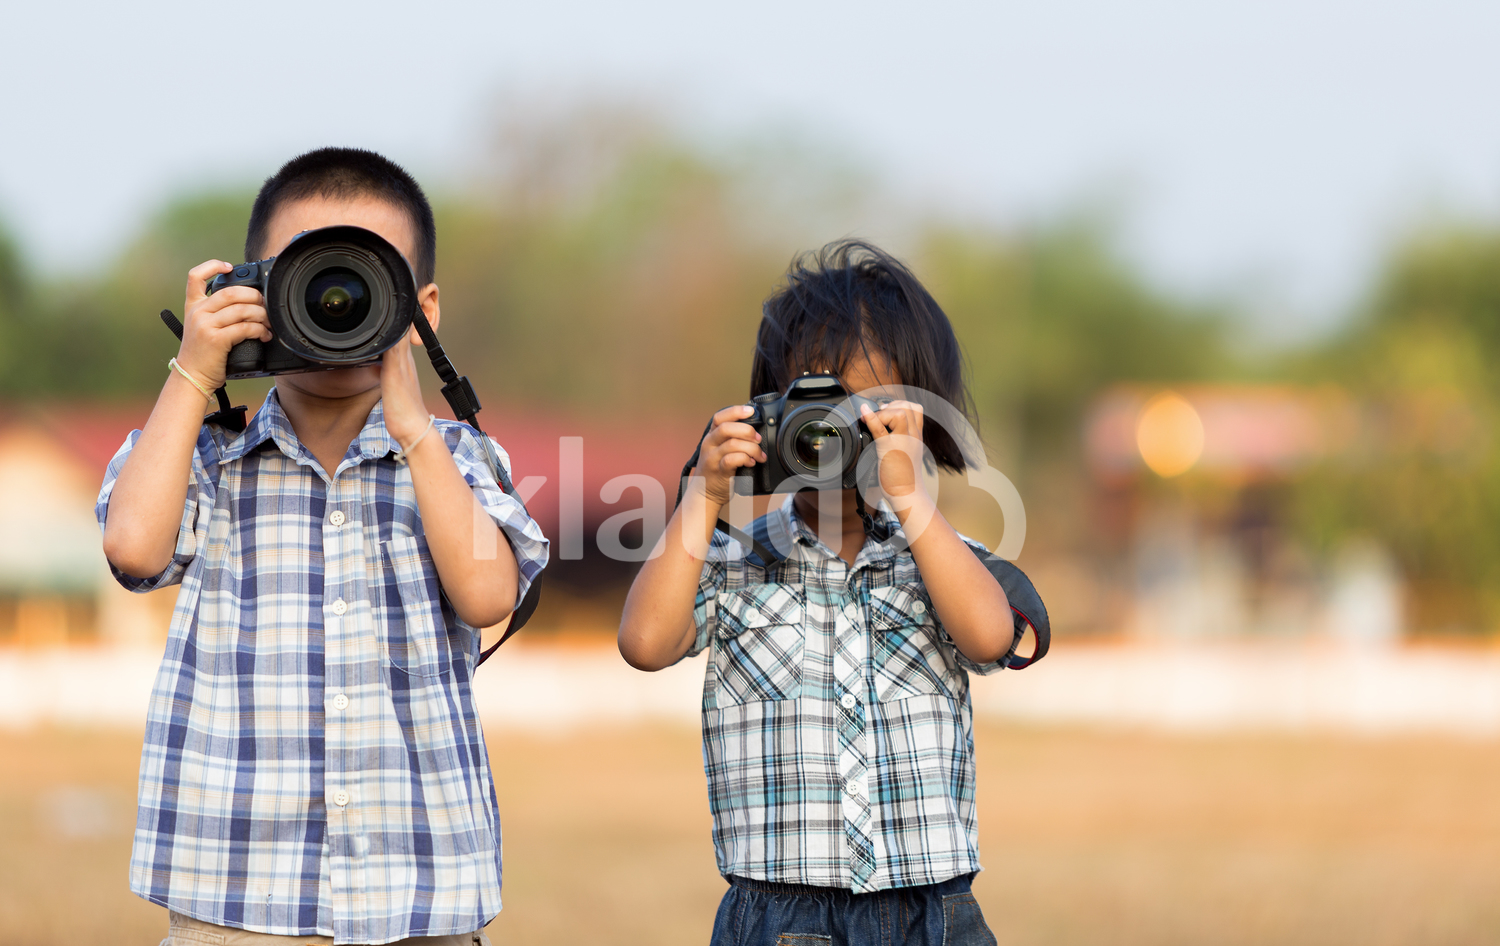 Cute children holding cameras